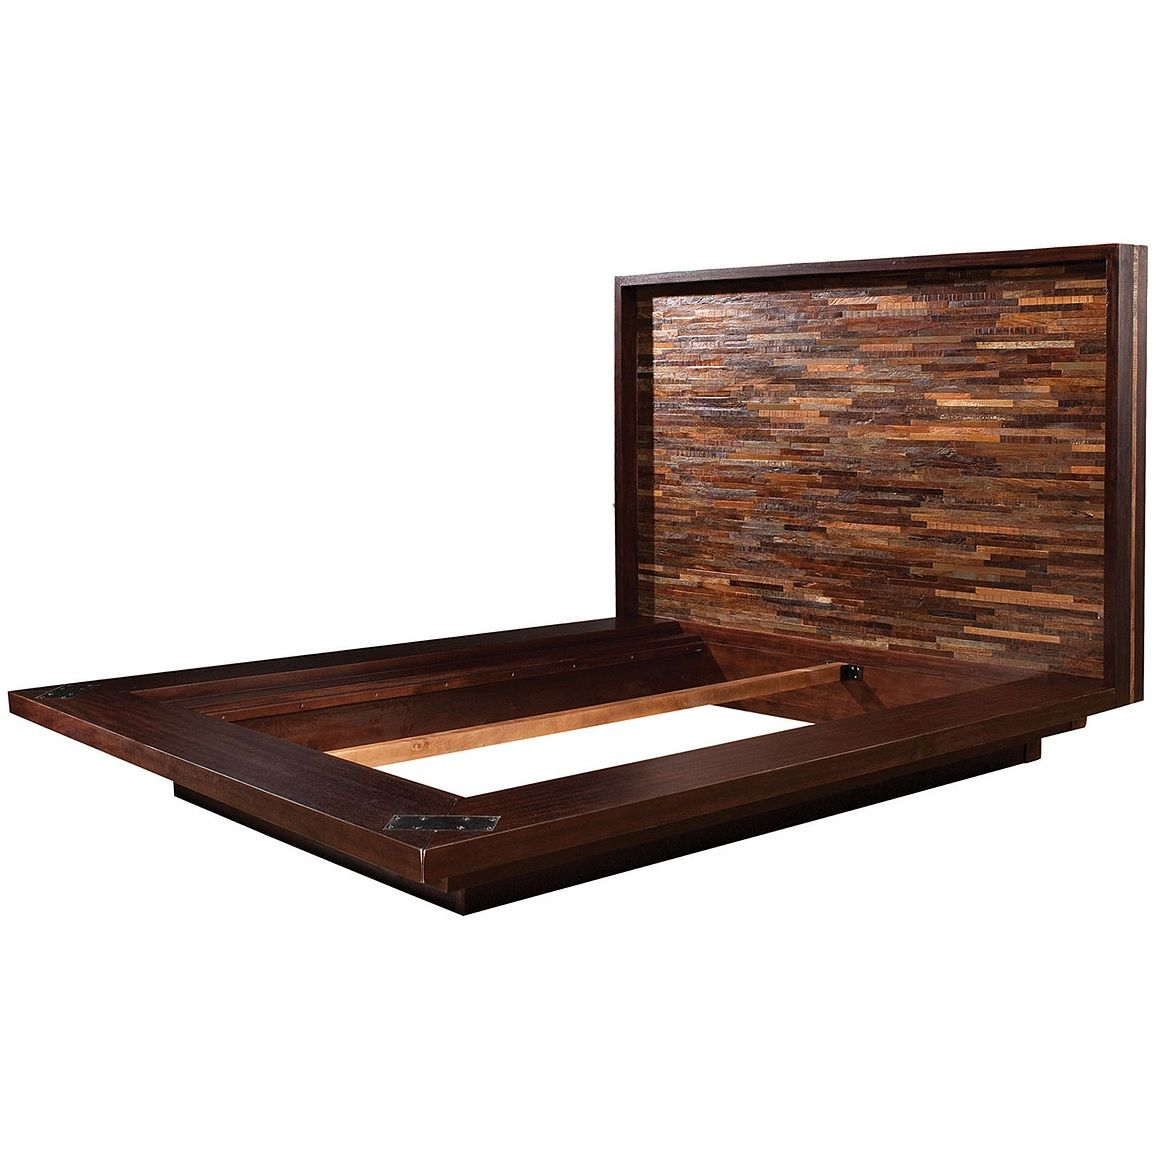 devon reclaimed wood king platform bed frame  wood platform bed  - devon reclaimed wood king platform bed frame